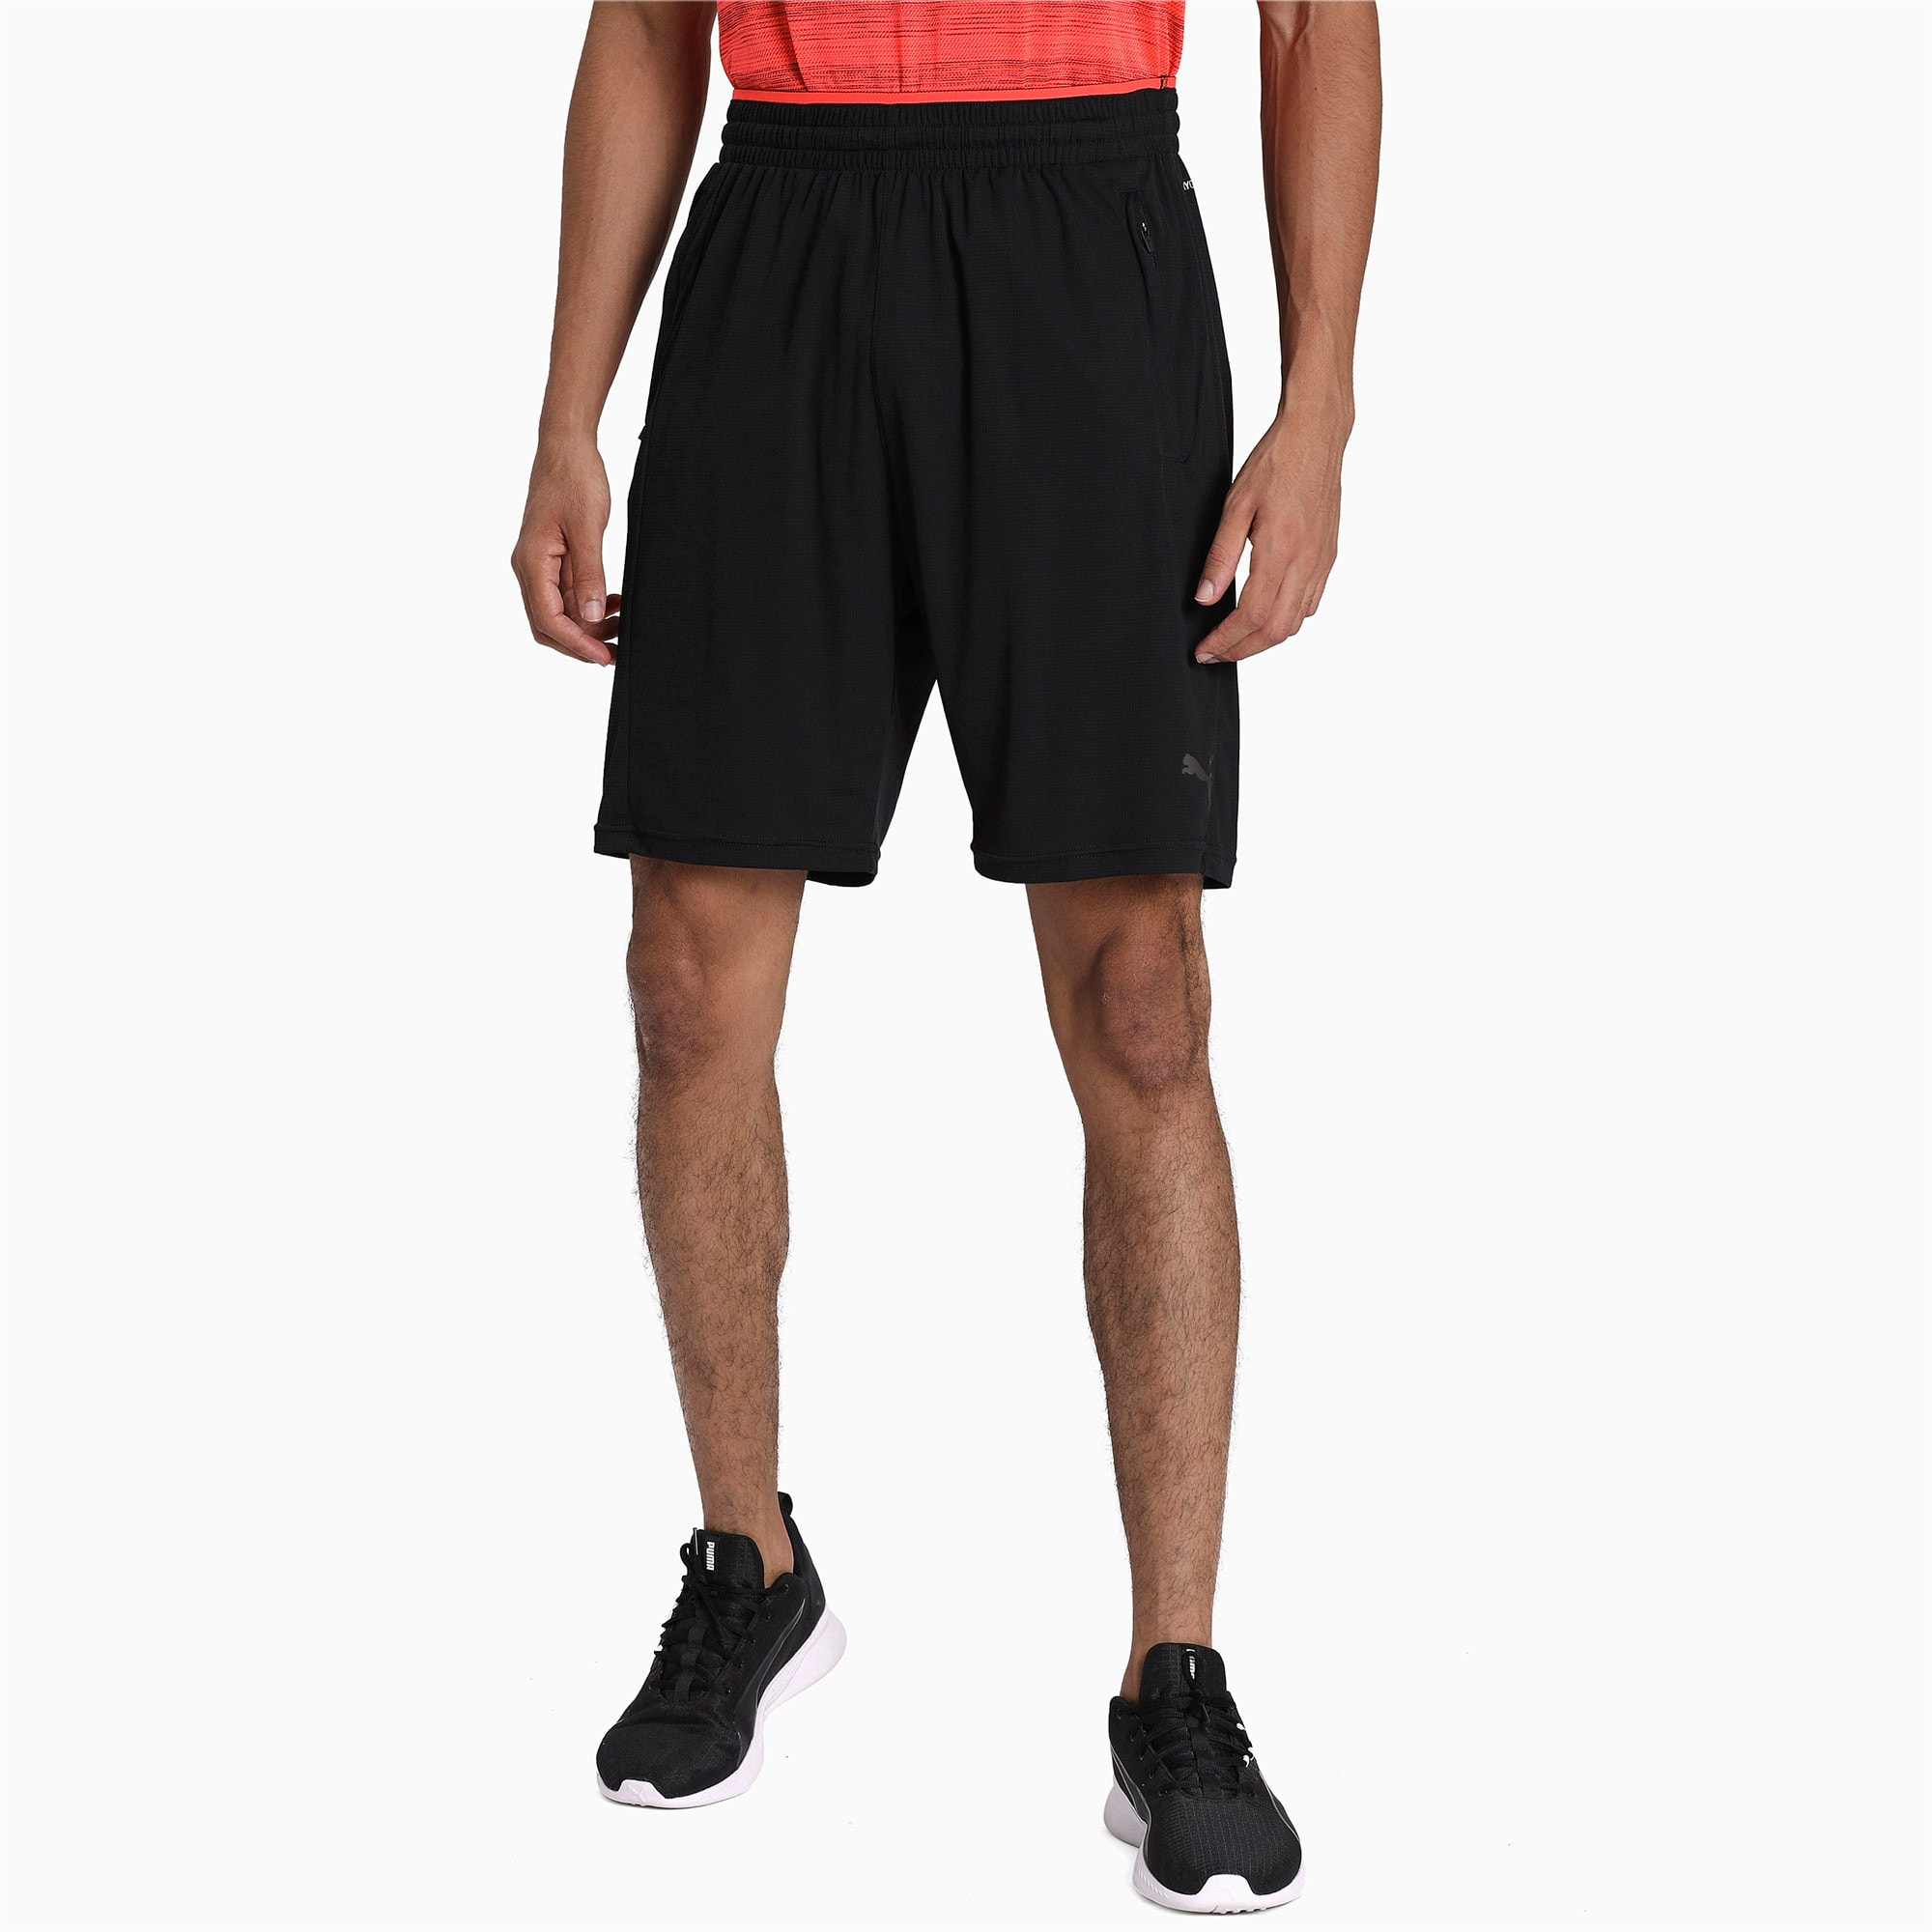 Thumbnail 4 of Collective Knitted Men's Training Shorts, Puma Black-Nrgy Red, medium-IND